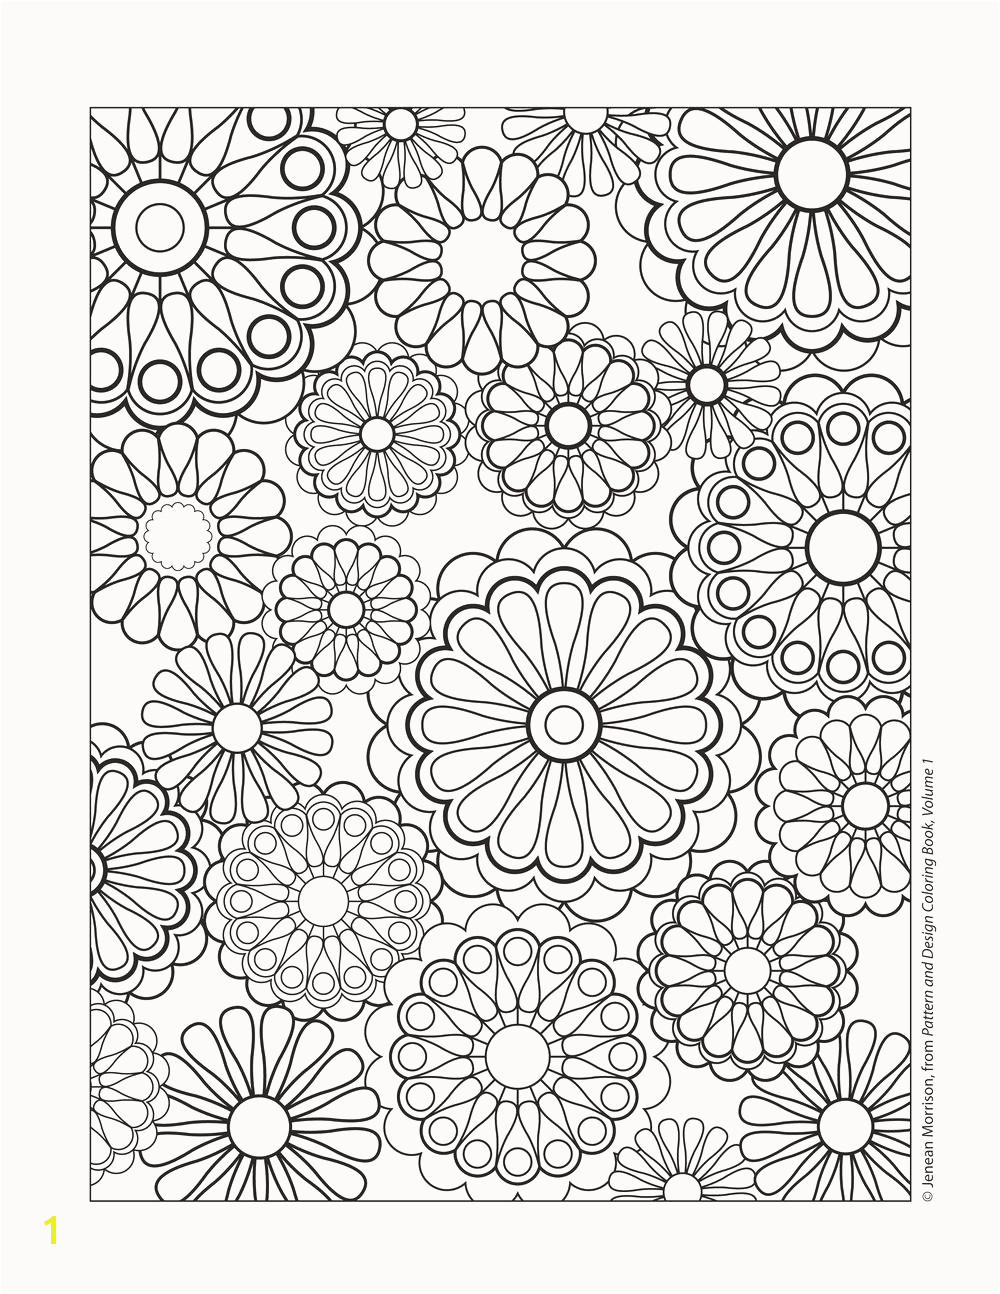 Coloring Page Unique s Printing Coloring Pages Inspirational Cool Coloring Page Unique